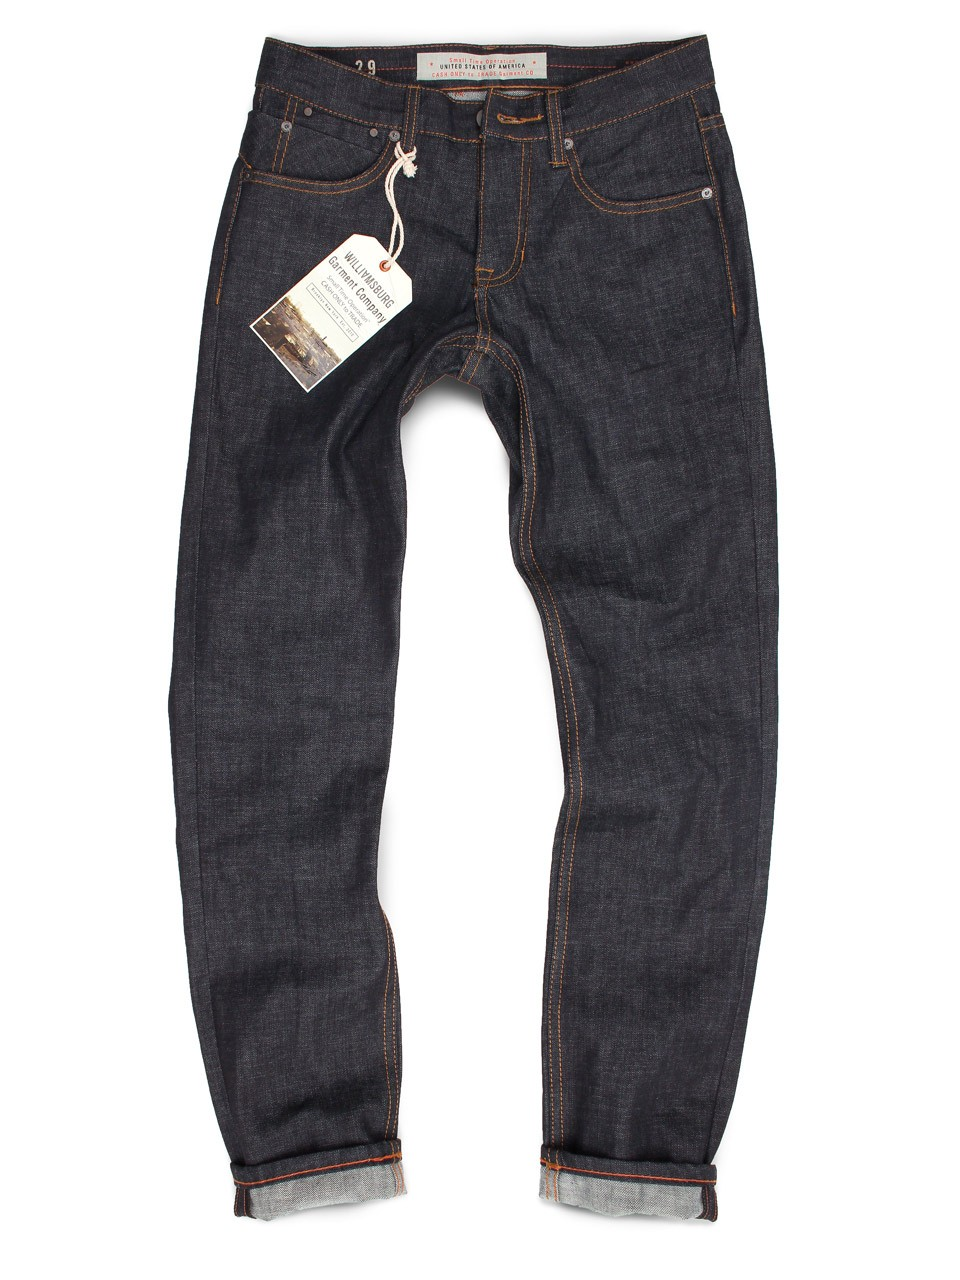 Raw Indigo Slim Jeans - GRAND STREET